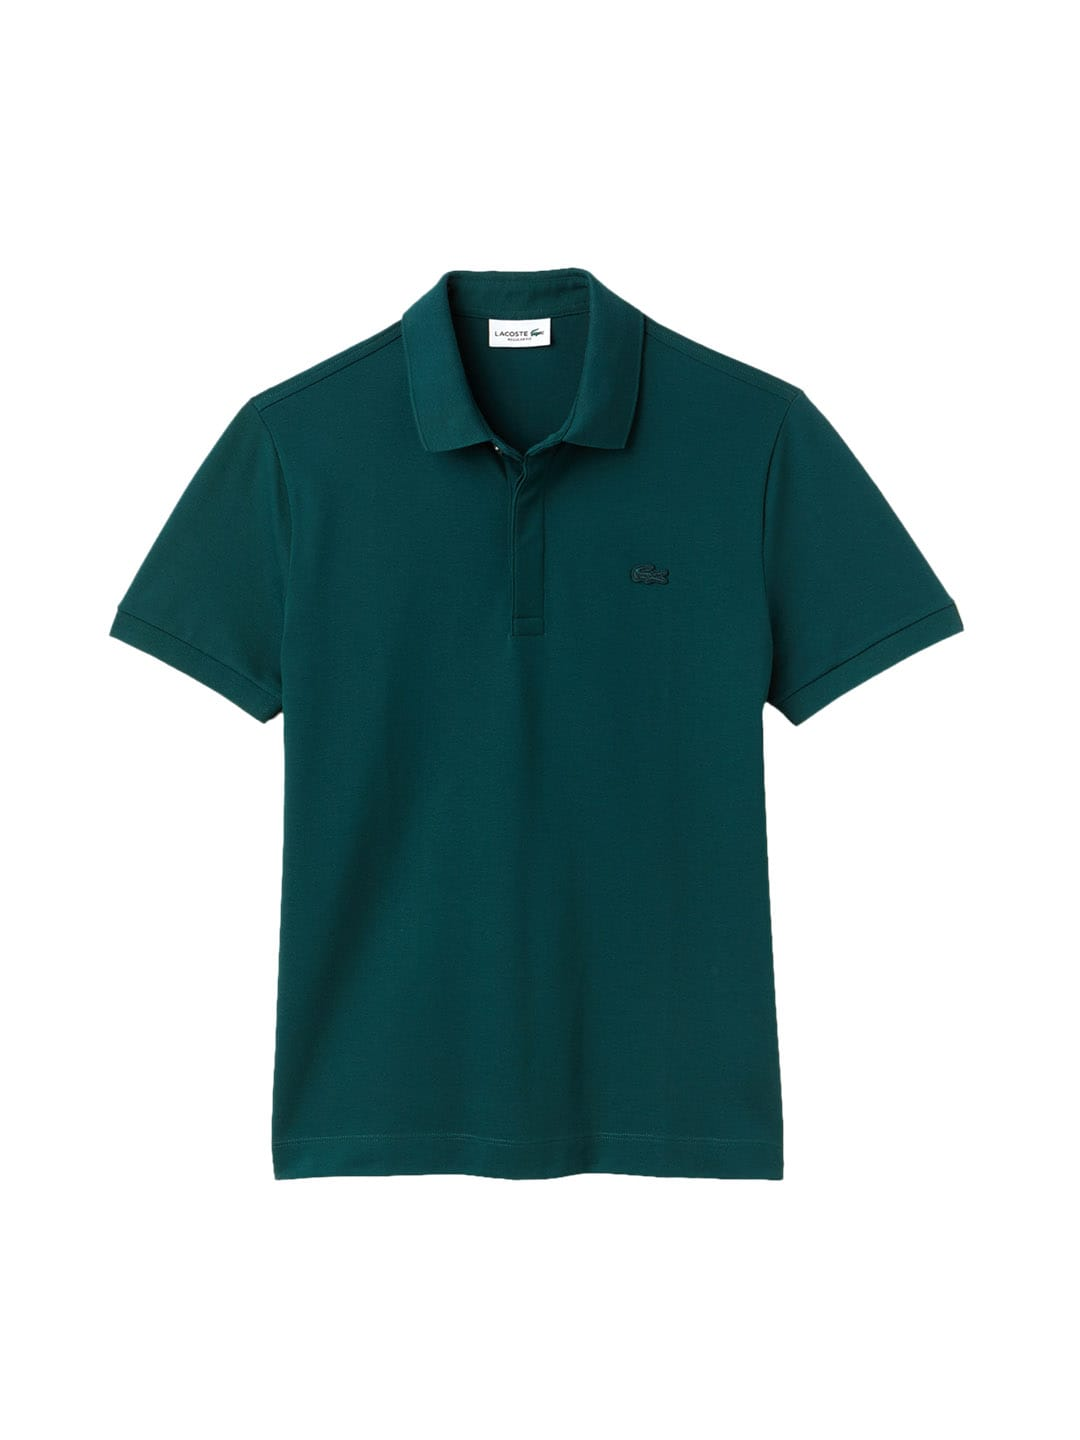 d3efbe0b0f8d Lacoste T-Shirts - Buy T Shirt from Lacoste Online Store